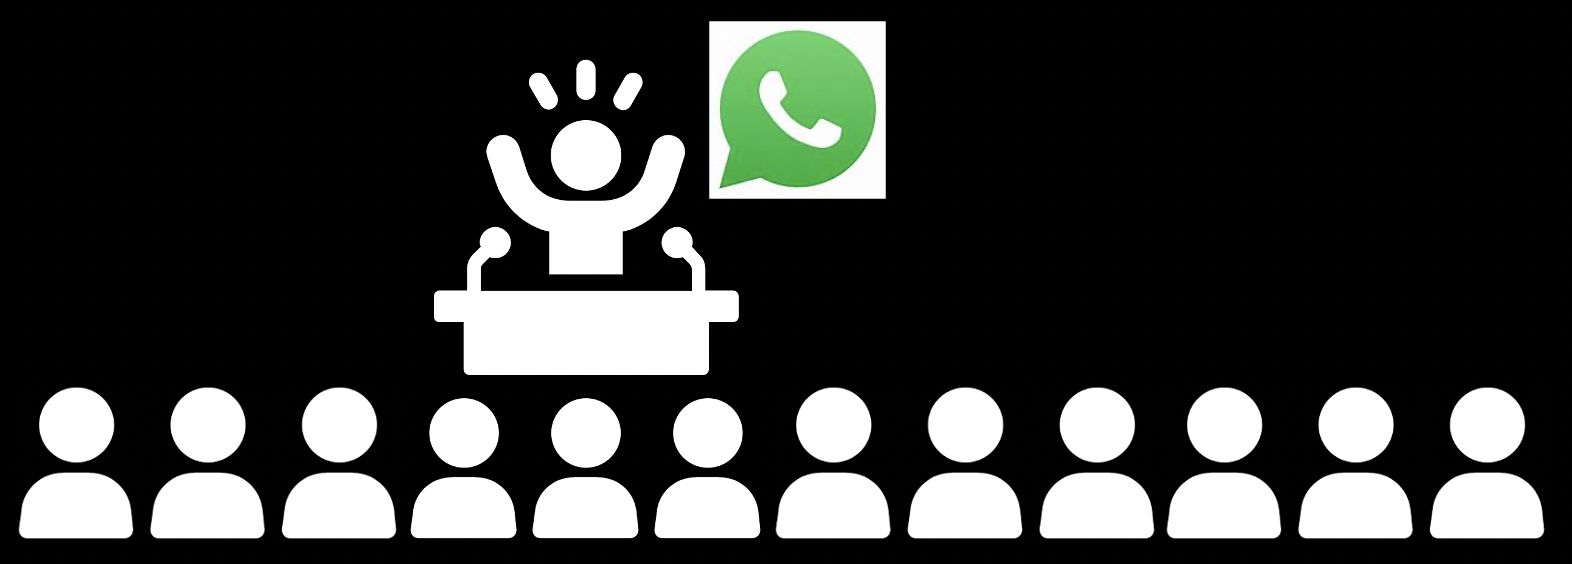 Personalize your campaign WhatsApp messages with Tell Them.